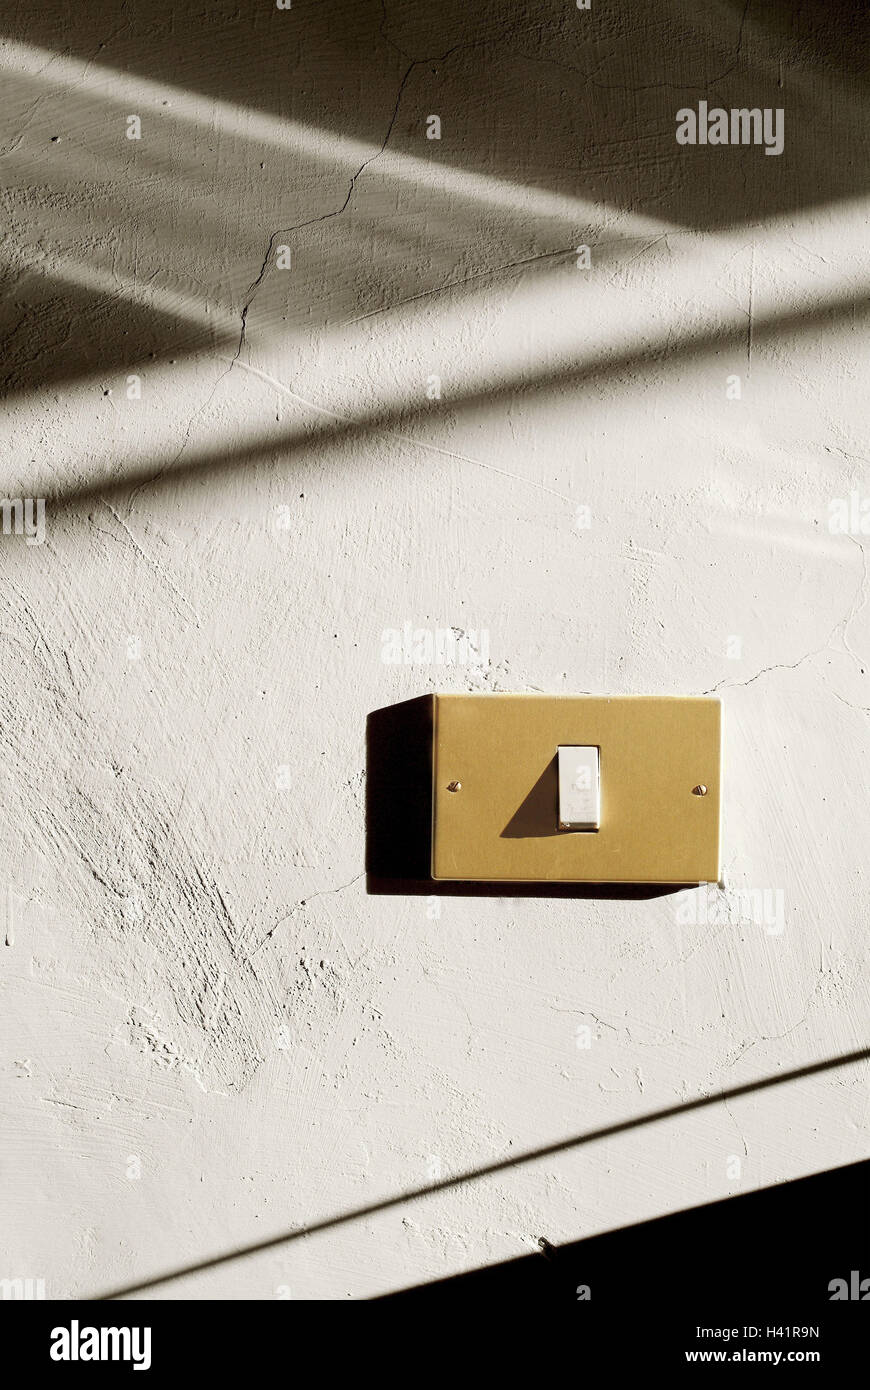 Wall, light switch defensive wall, toggle, wall switch, switch, conception, electricity, current, energy, light, - Stock Image